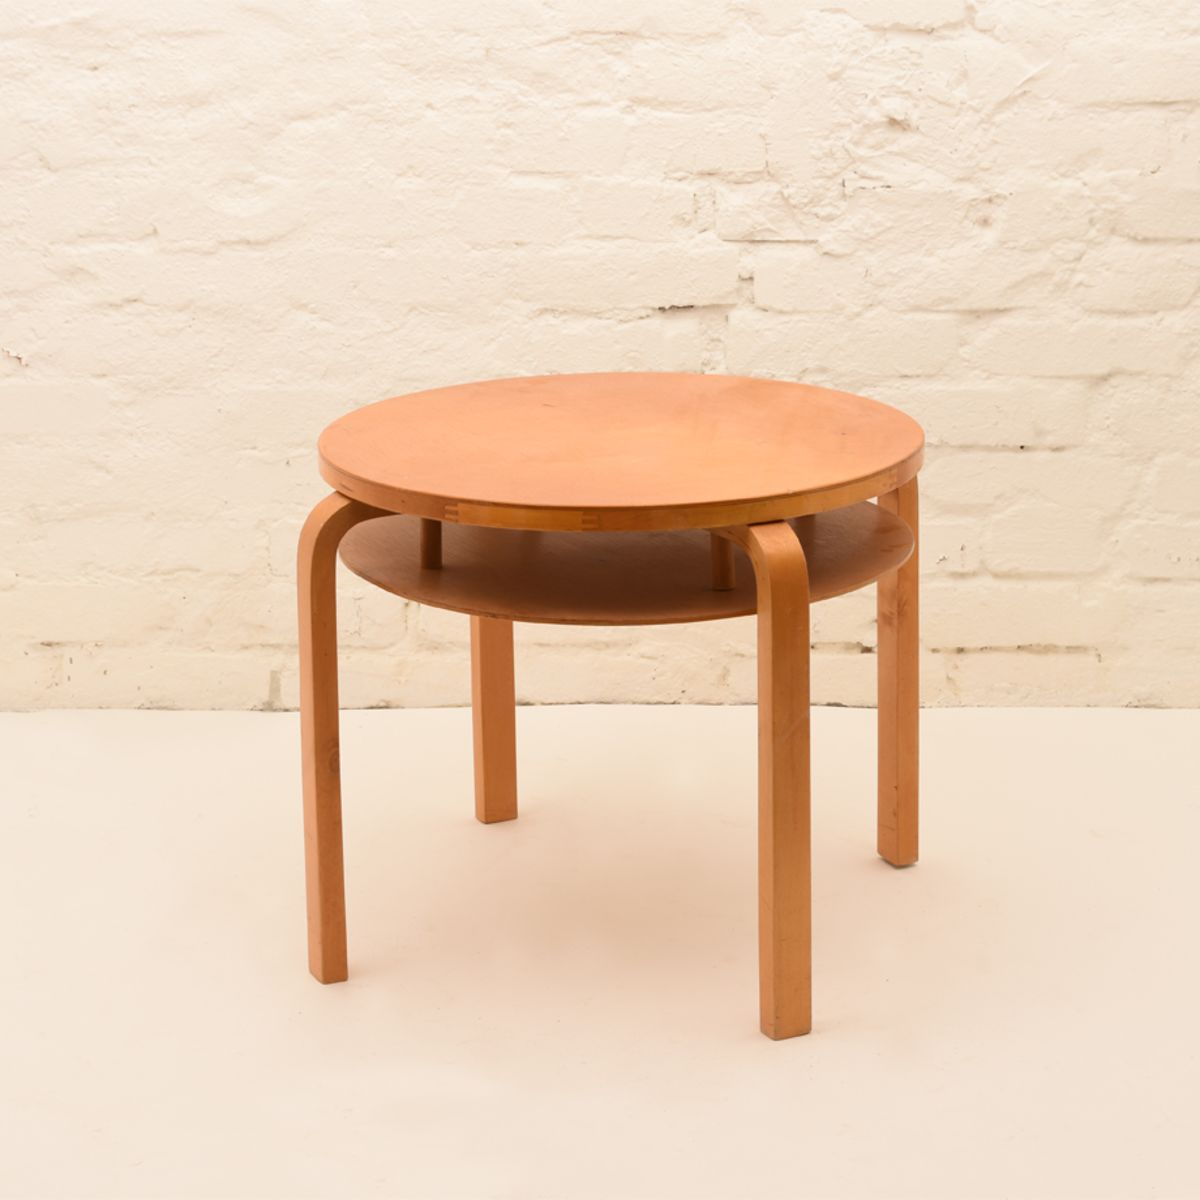 Alvar-Aalto_Club-Table-907B_Lacquared-Birch